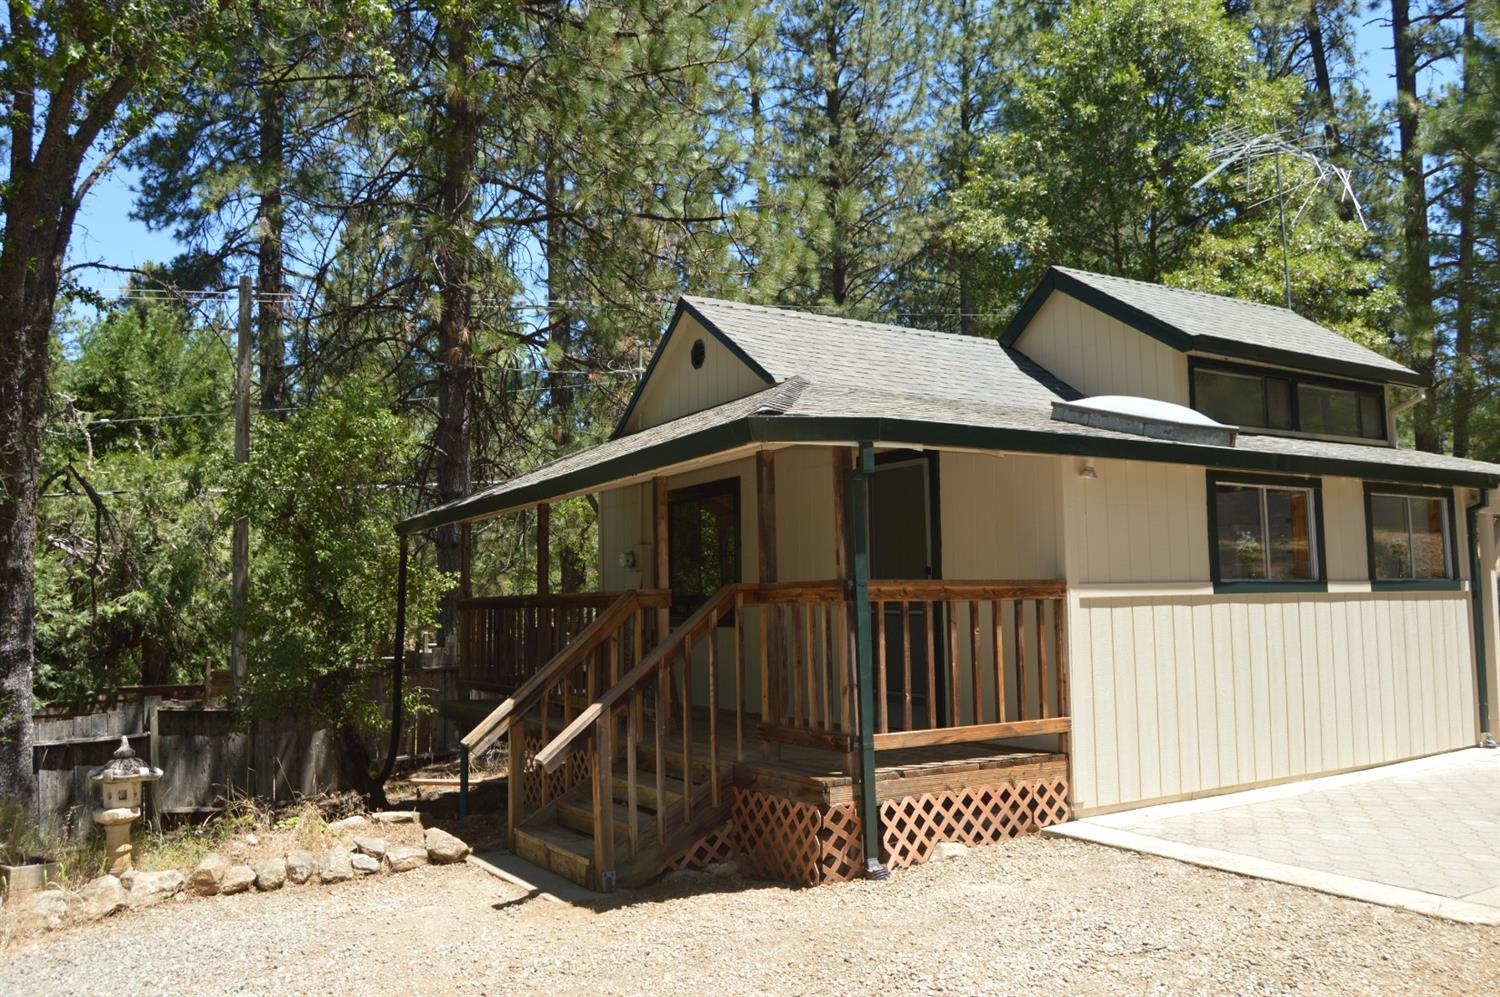 A cozy country cabin! 1 bedroom 1 bath with loft and basement. Gentle rolling land that is perfect for your animals and garden and plenty of room to build your dream home. Enjoy the rural life yet only 15 min to downtown! Welcome Home!